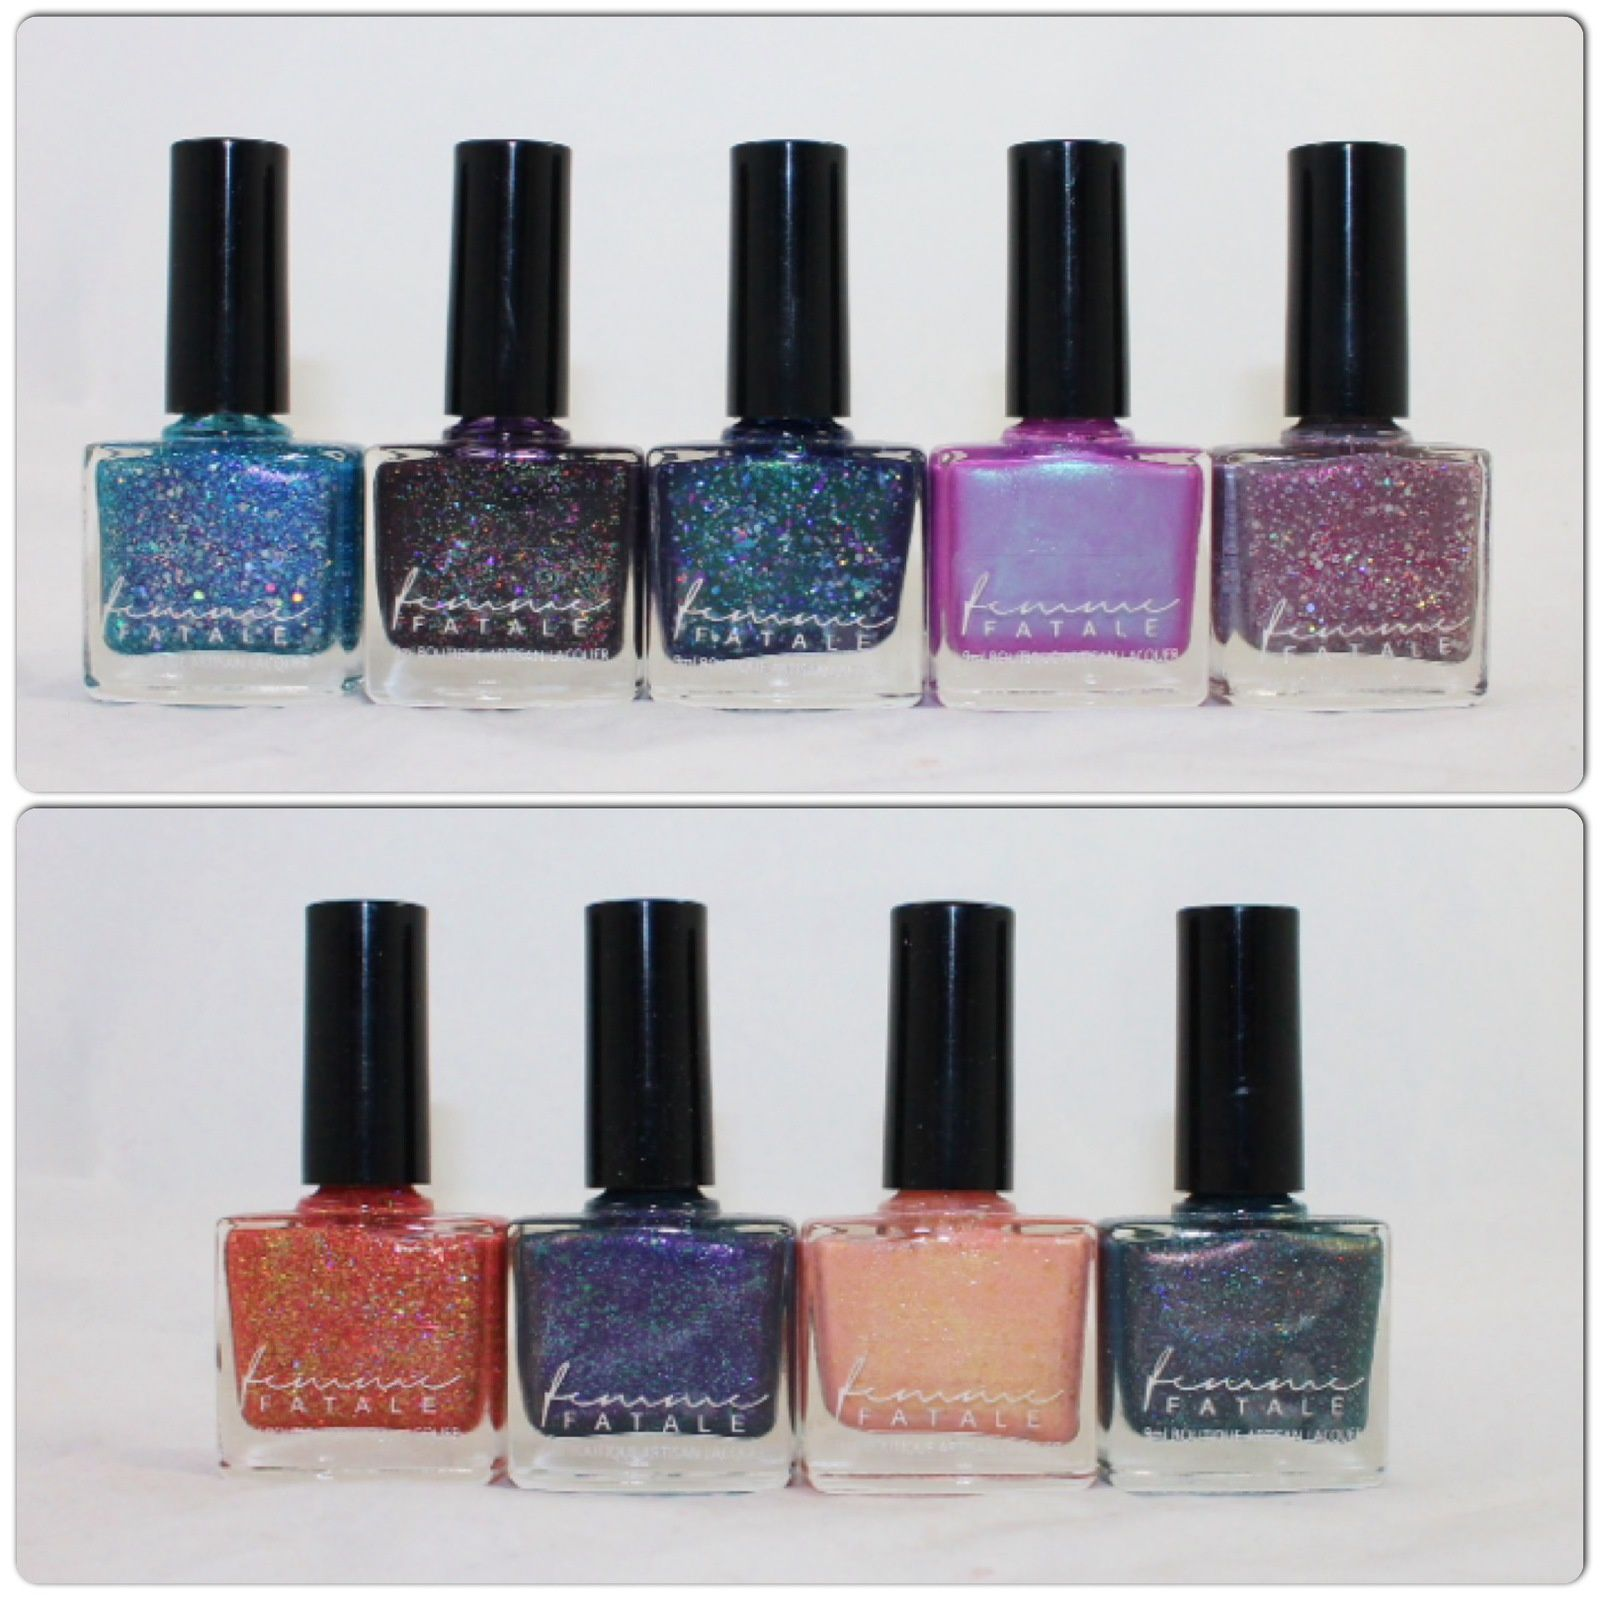 Femme Fatale Cosmetics: Glass Carnival, Sideshow Sparkler, Glacier Nether, Dreamscape, Solar Storm, Sunset Dreams of Ice Cream, Dust of Nibiru, Sunspring, Stargazing on Saturn.